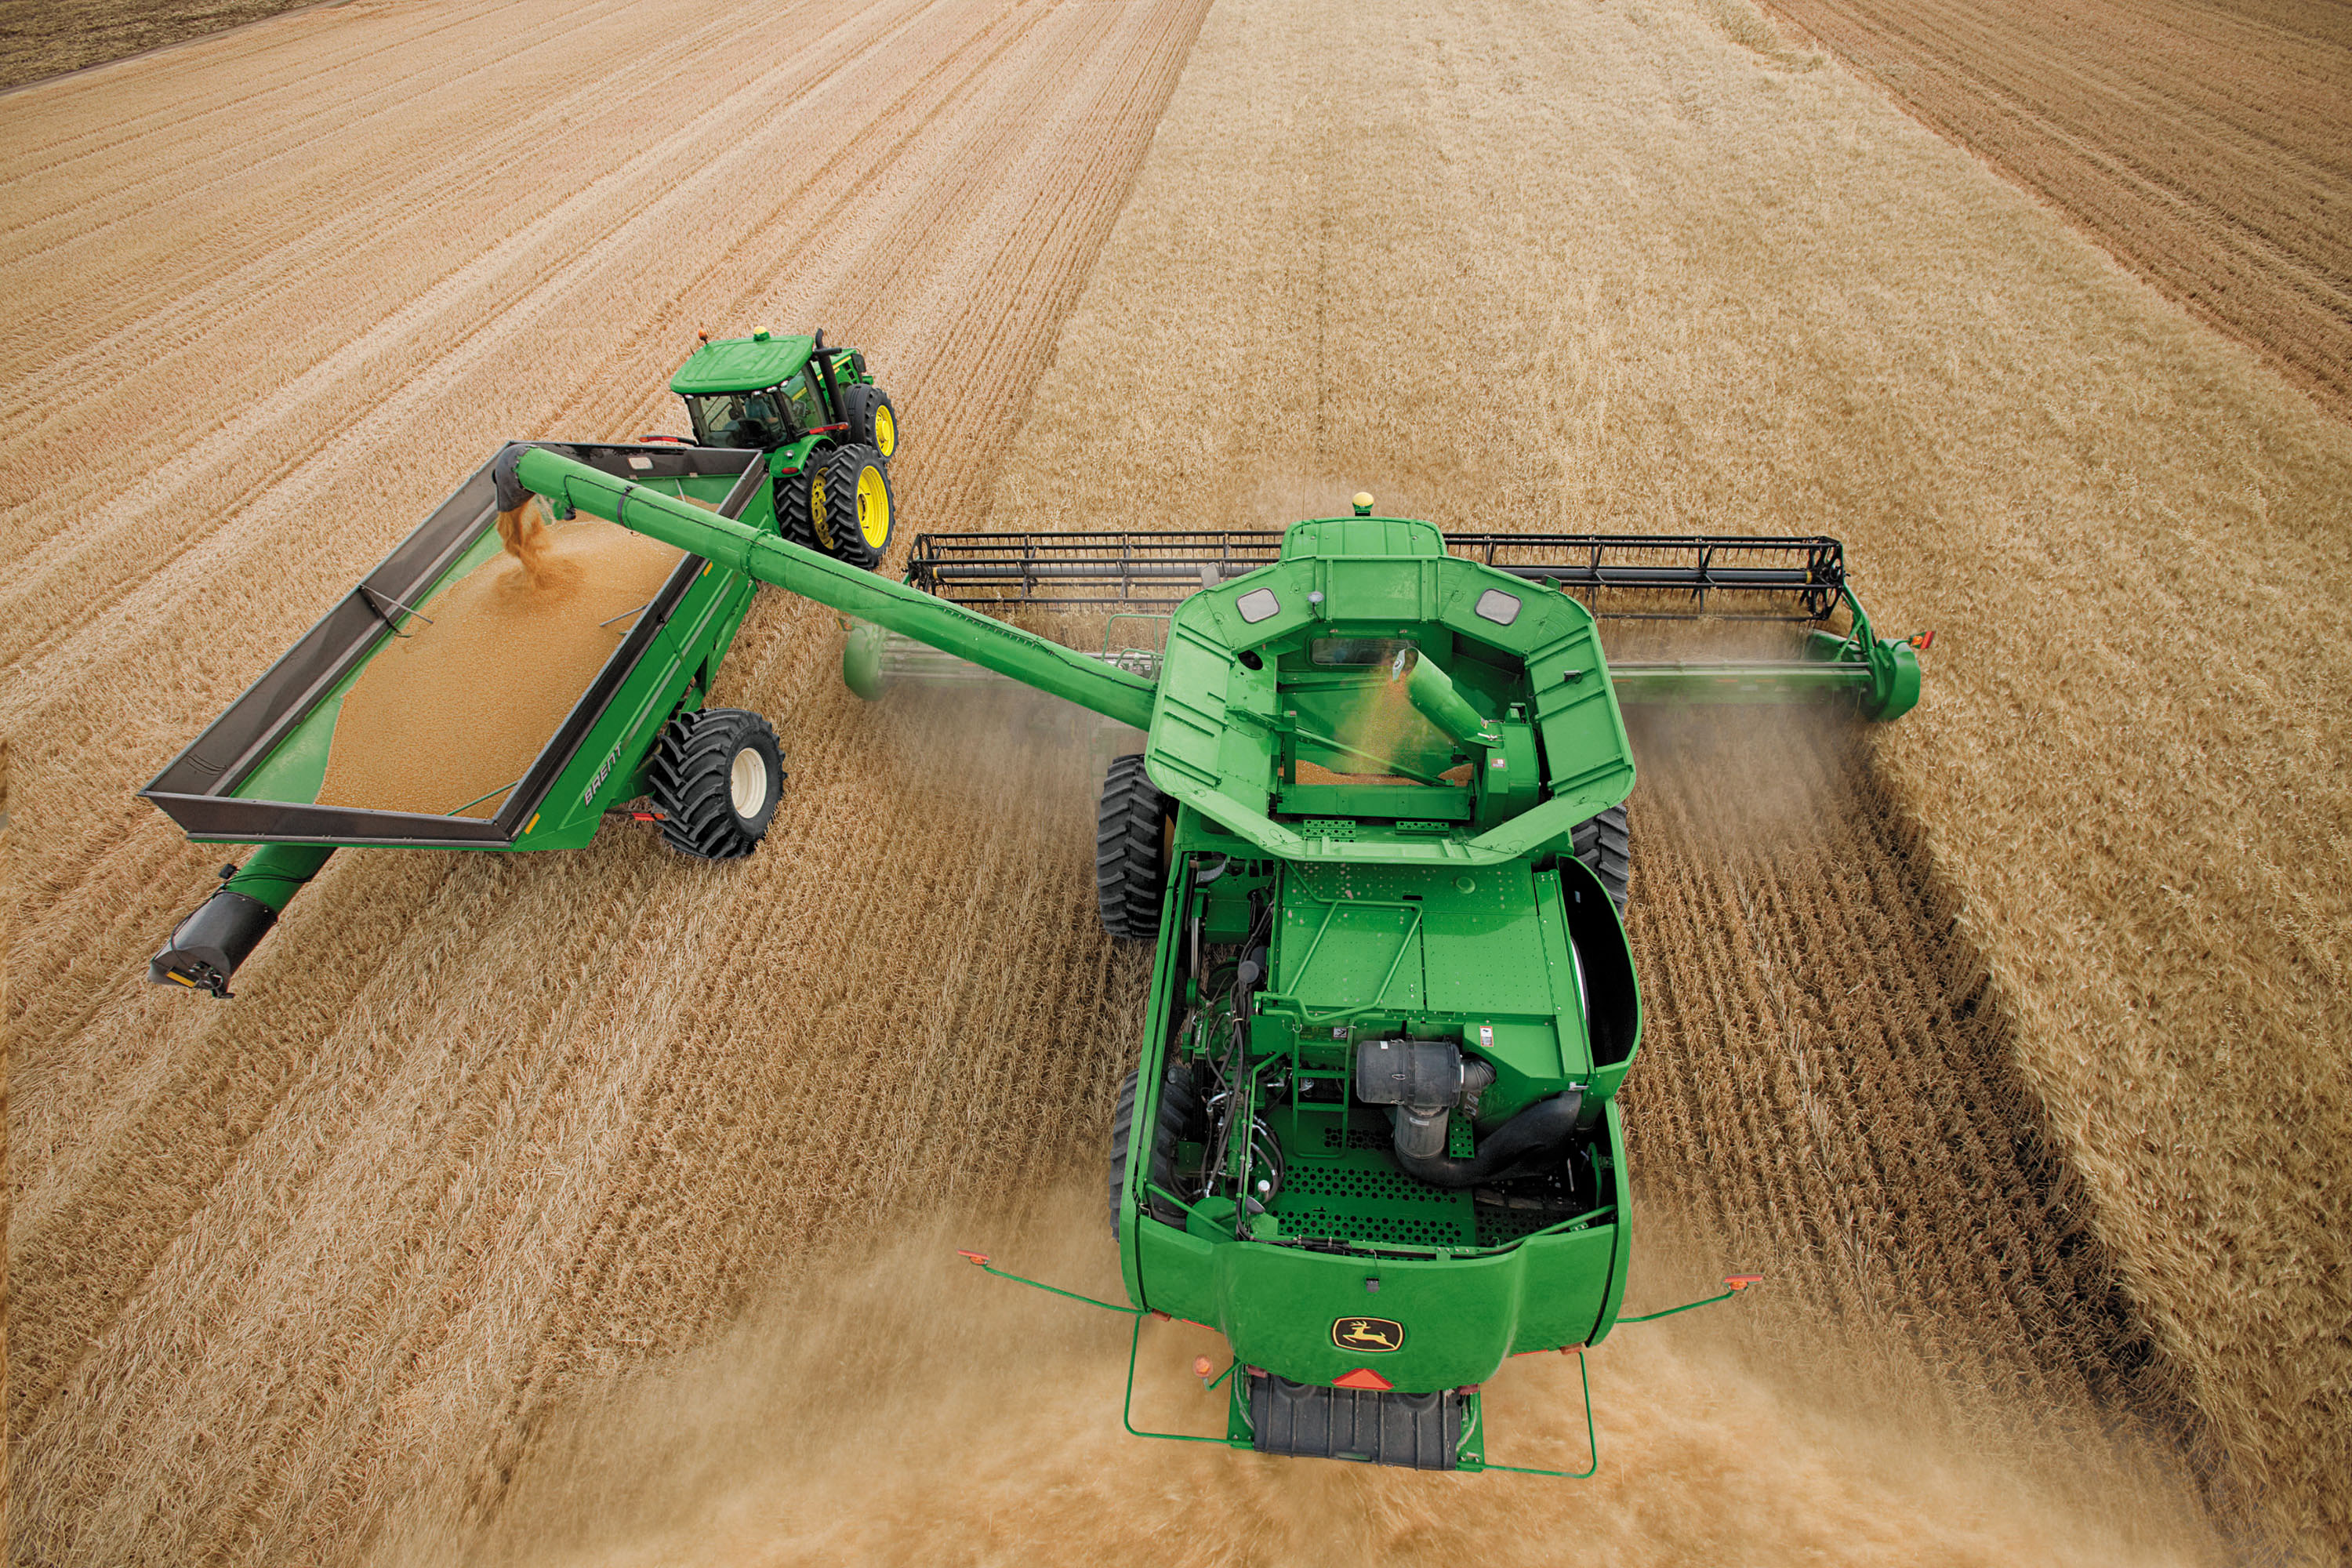 John Deere Introduces New Machine Sync Technology to Optimize ...